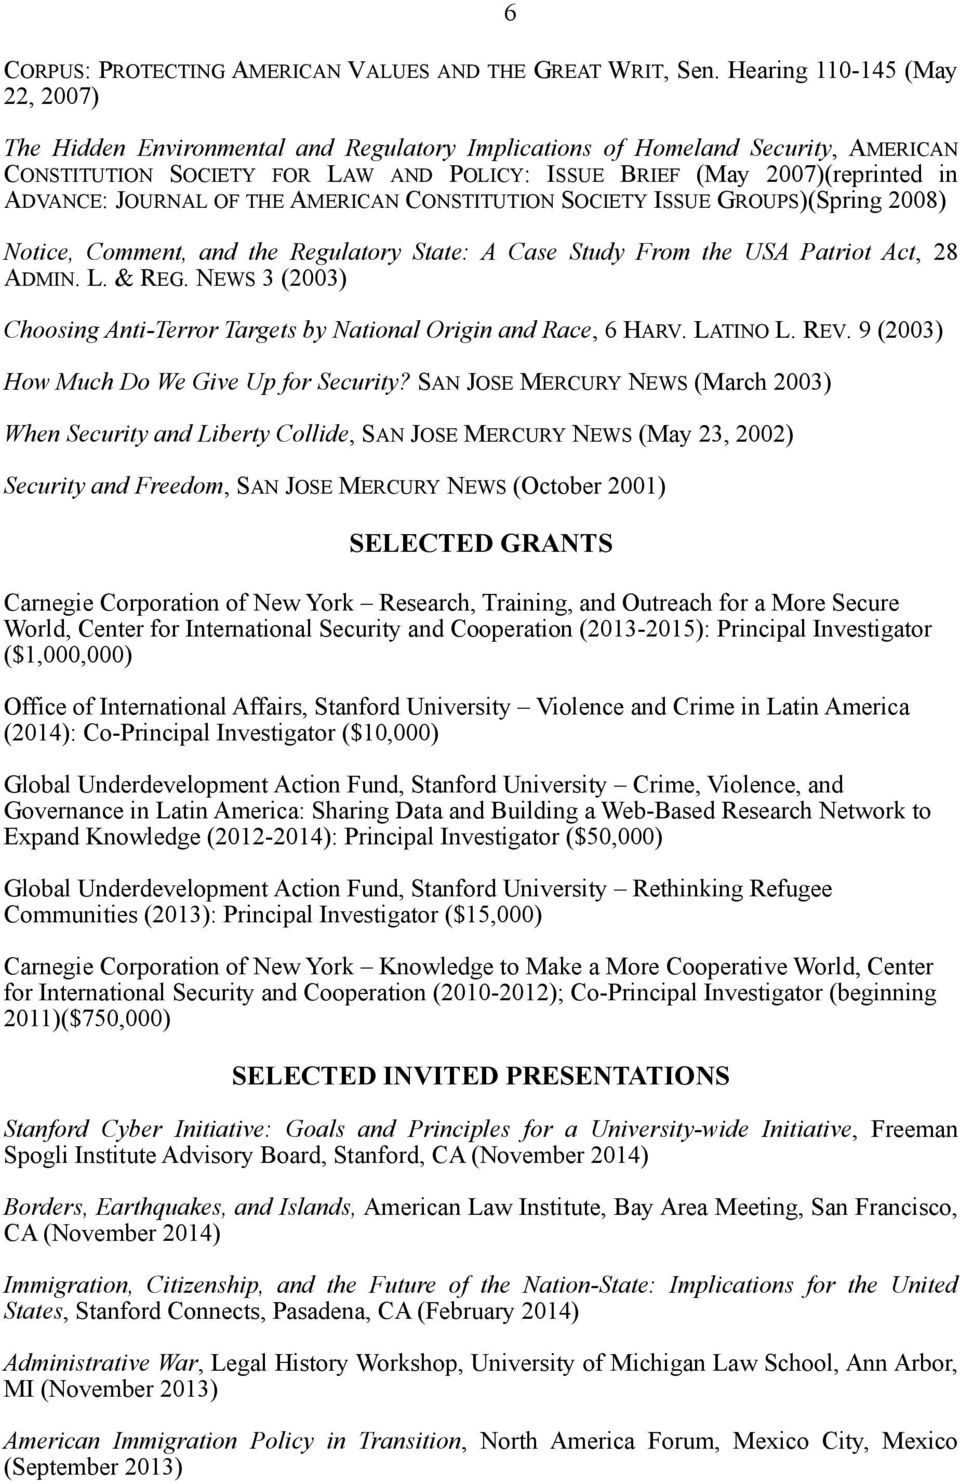 ADVANCE: JOURNAL OF THE AMERICAN CONSTITUTION SOCIETY ISSUE GROUPS)(Spring 2008) Notice, Comment, and the Regulatory State: A Case Study From the USA Patriot Act, 28 ADMIN. L. & REG.